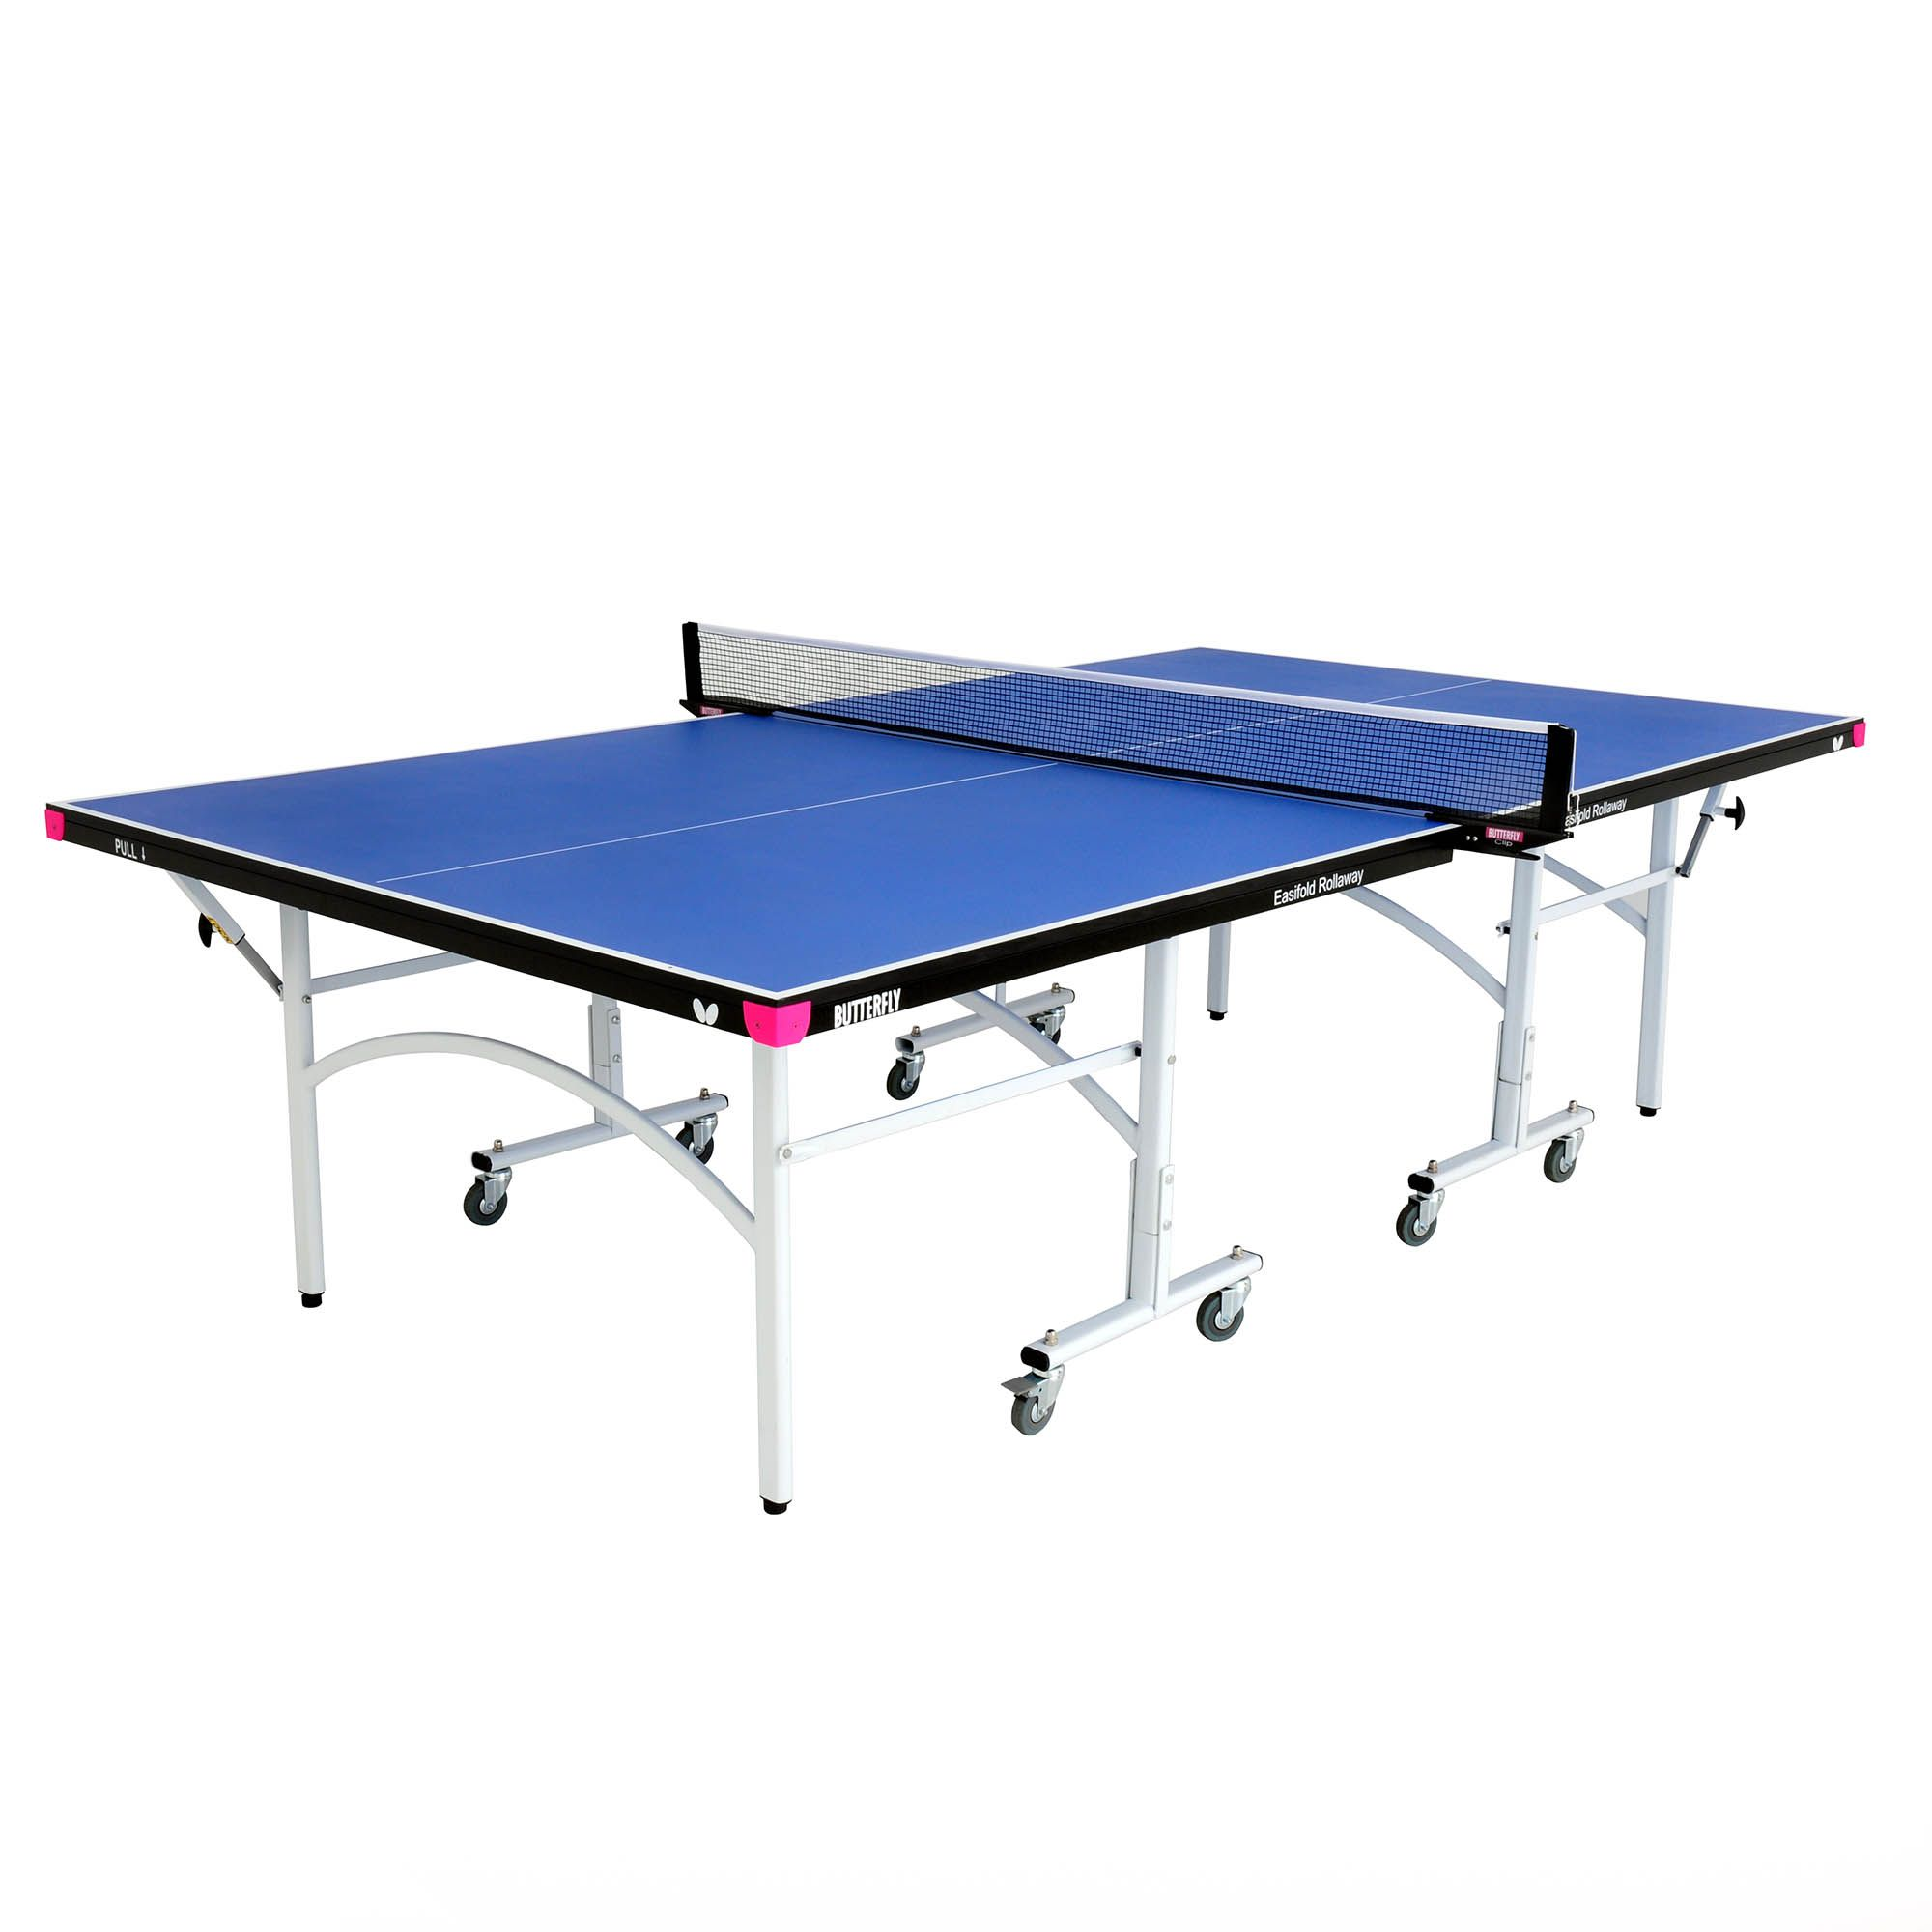 Table tennis tables are available in many different varieties and although table tennis is generally played indoors, it can also be played outdoors. However, to play table tennis outdoors you'll need the right type of table and the right weather conditions.